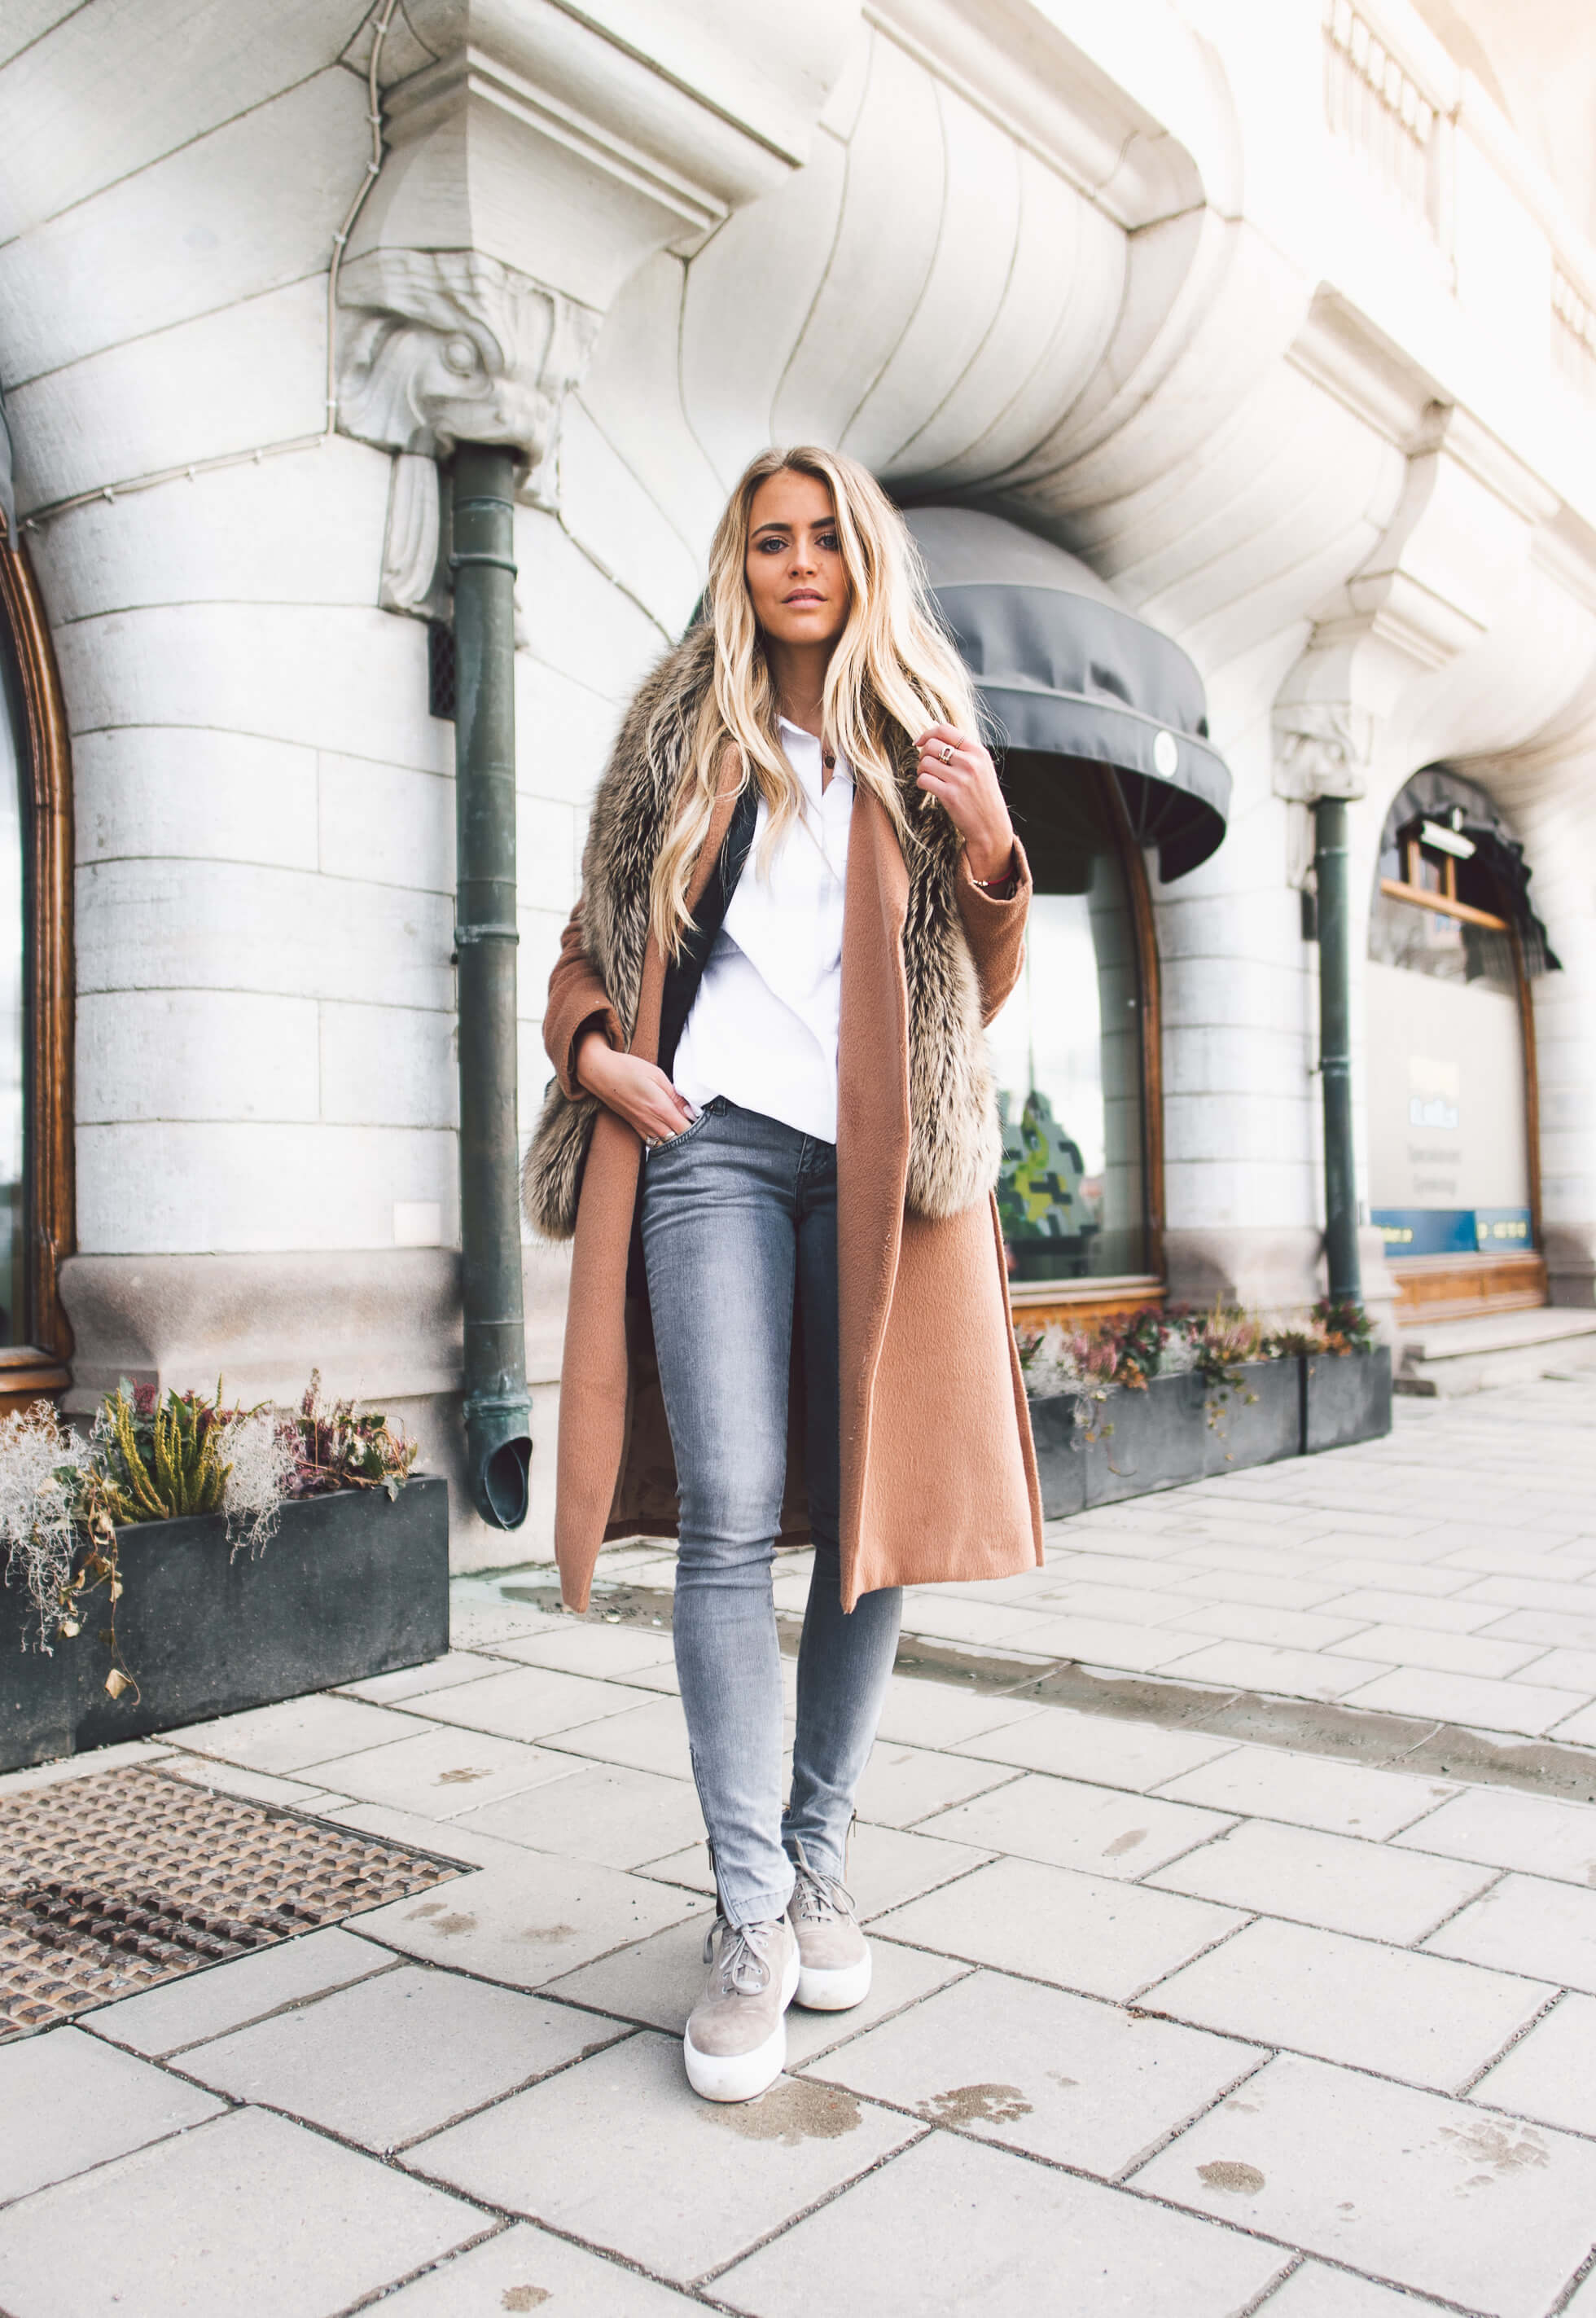 janni-deler-city-vibes-outfitDSC_8632